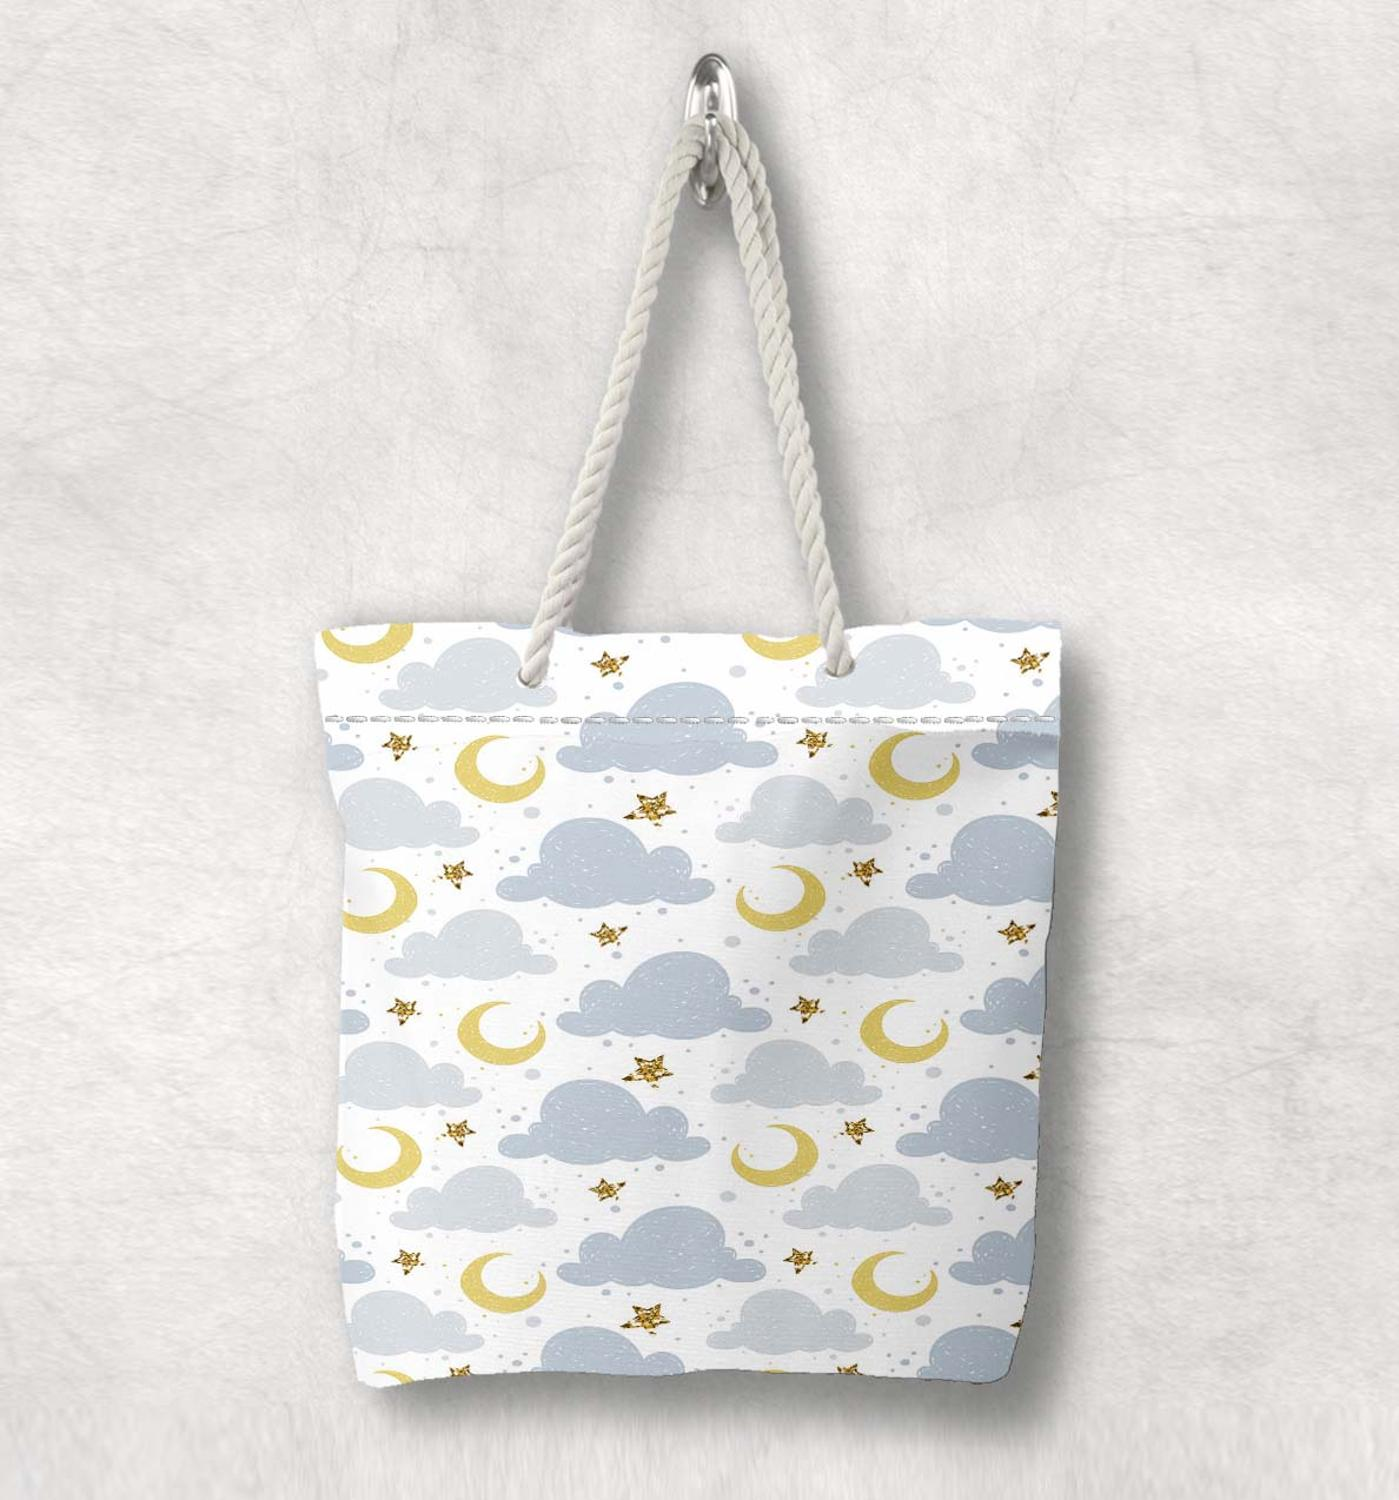 Else Gray Clouds Yellow Moon Stars New Fashion White Rope Handle Canvas Bag  Cartoon Print Zippered Tote Bag Shoulder Bag